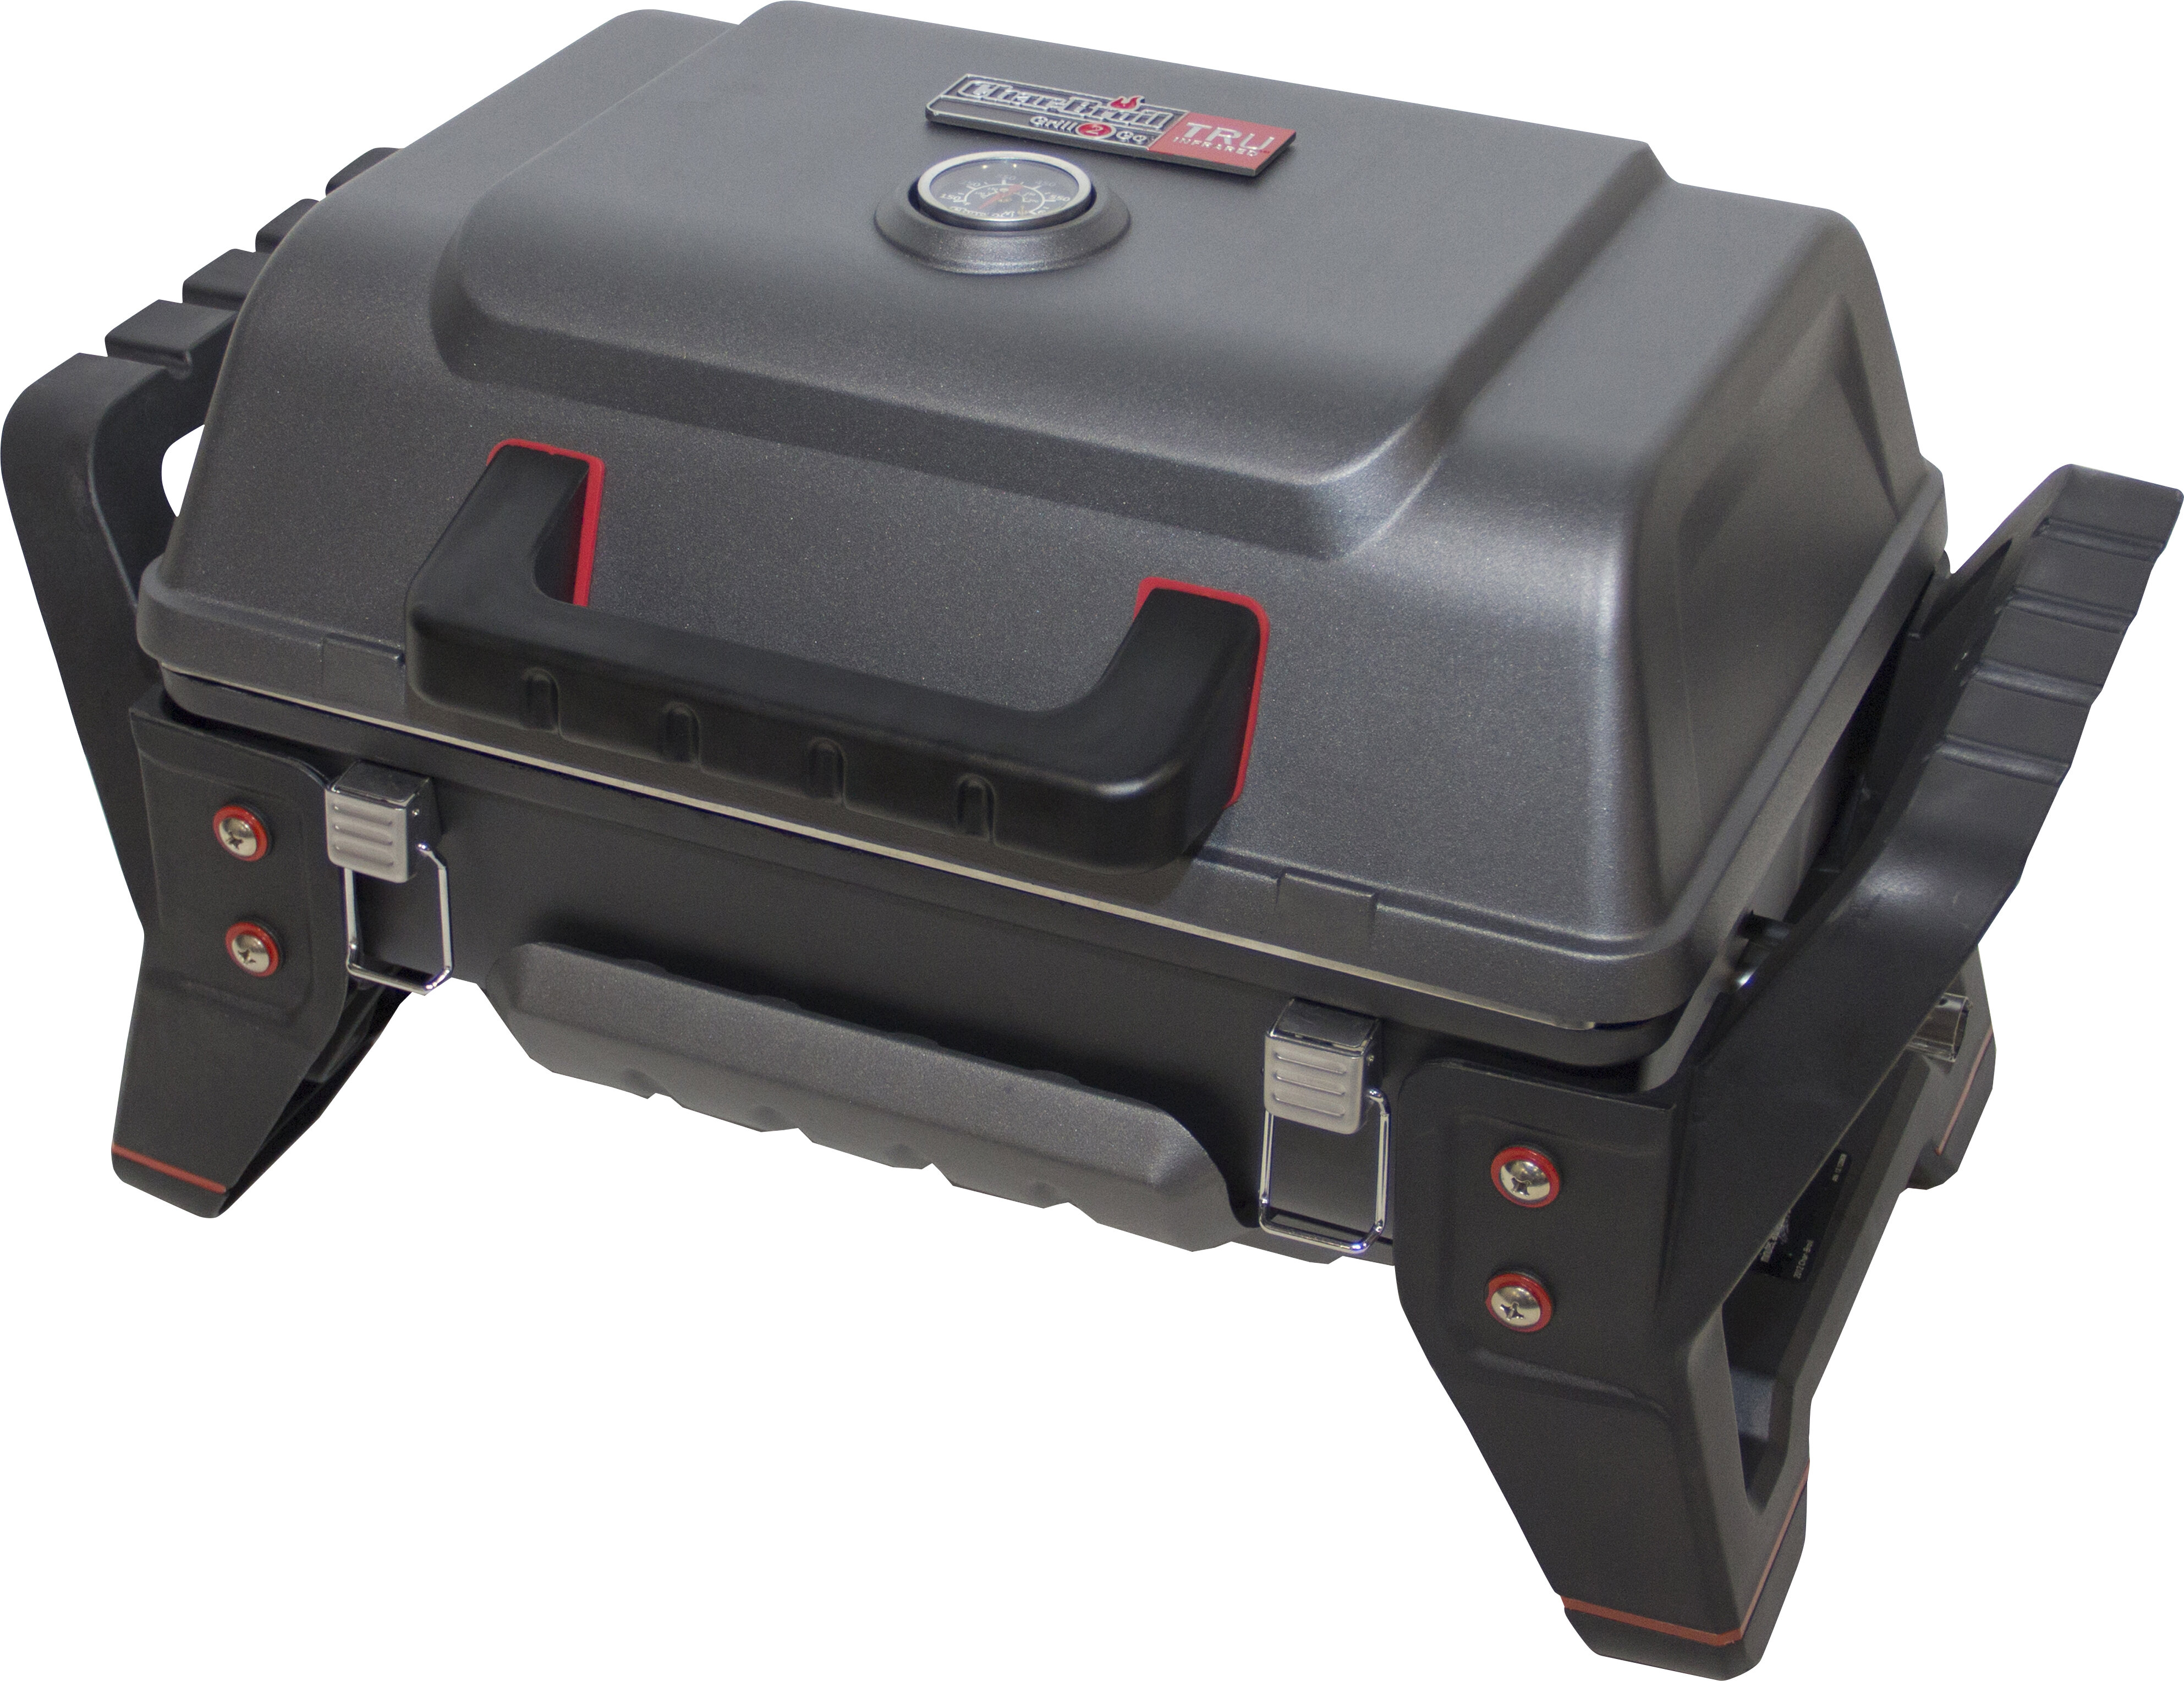 Charbroil Grill2go Tru Infrared Portable Propane Gas Tabletop Grill Reviews Wayfair